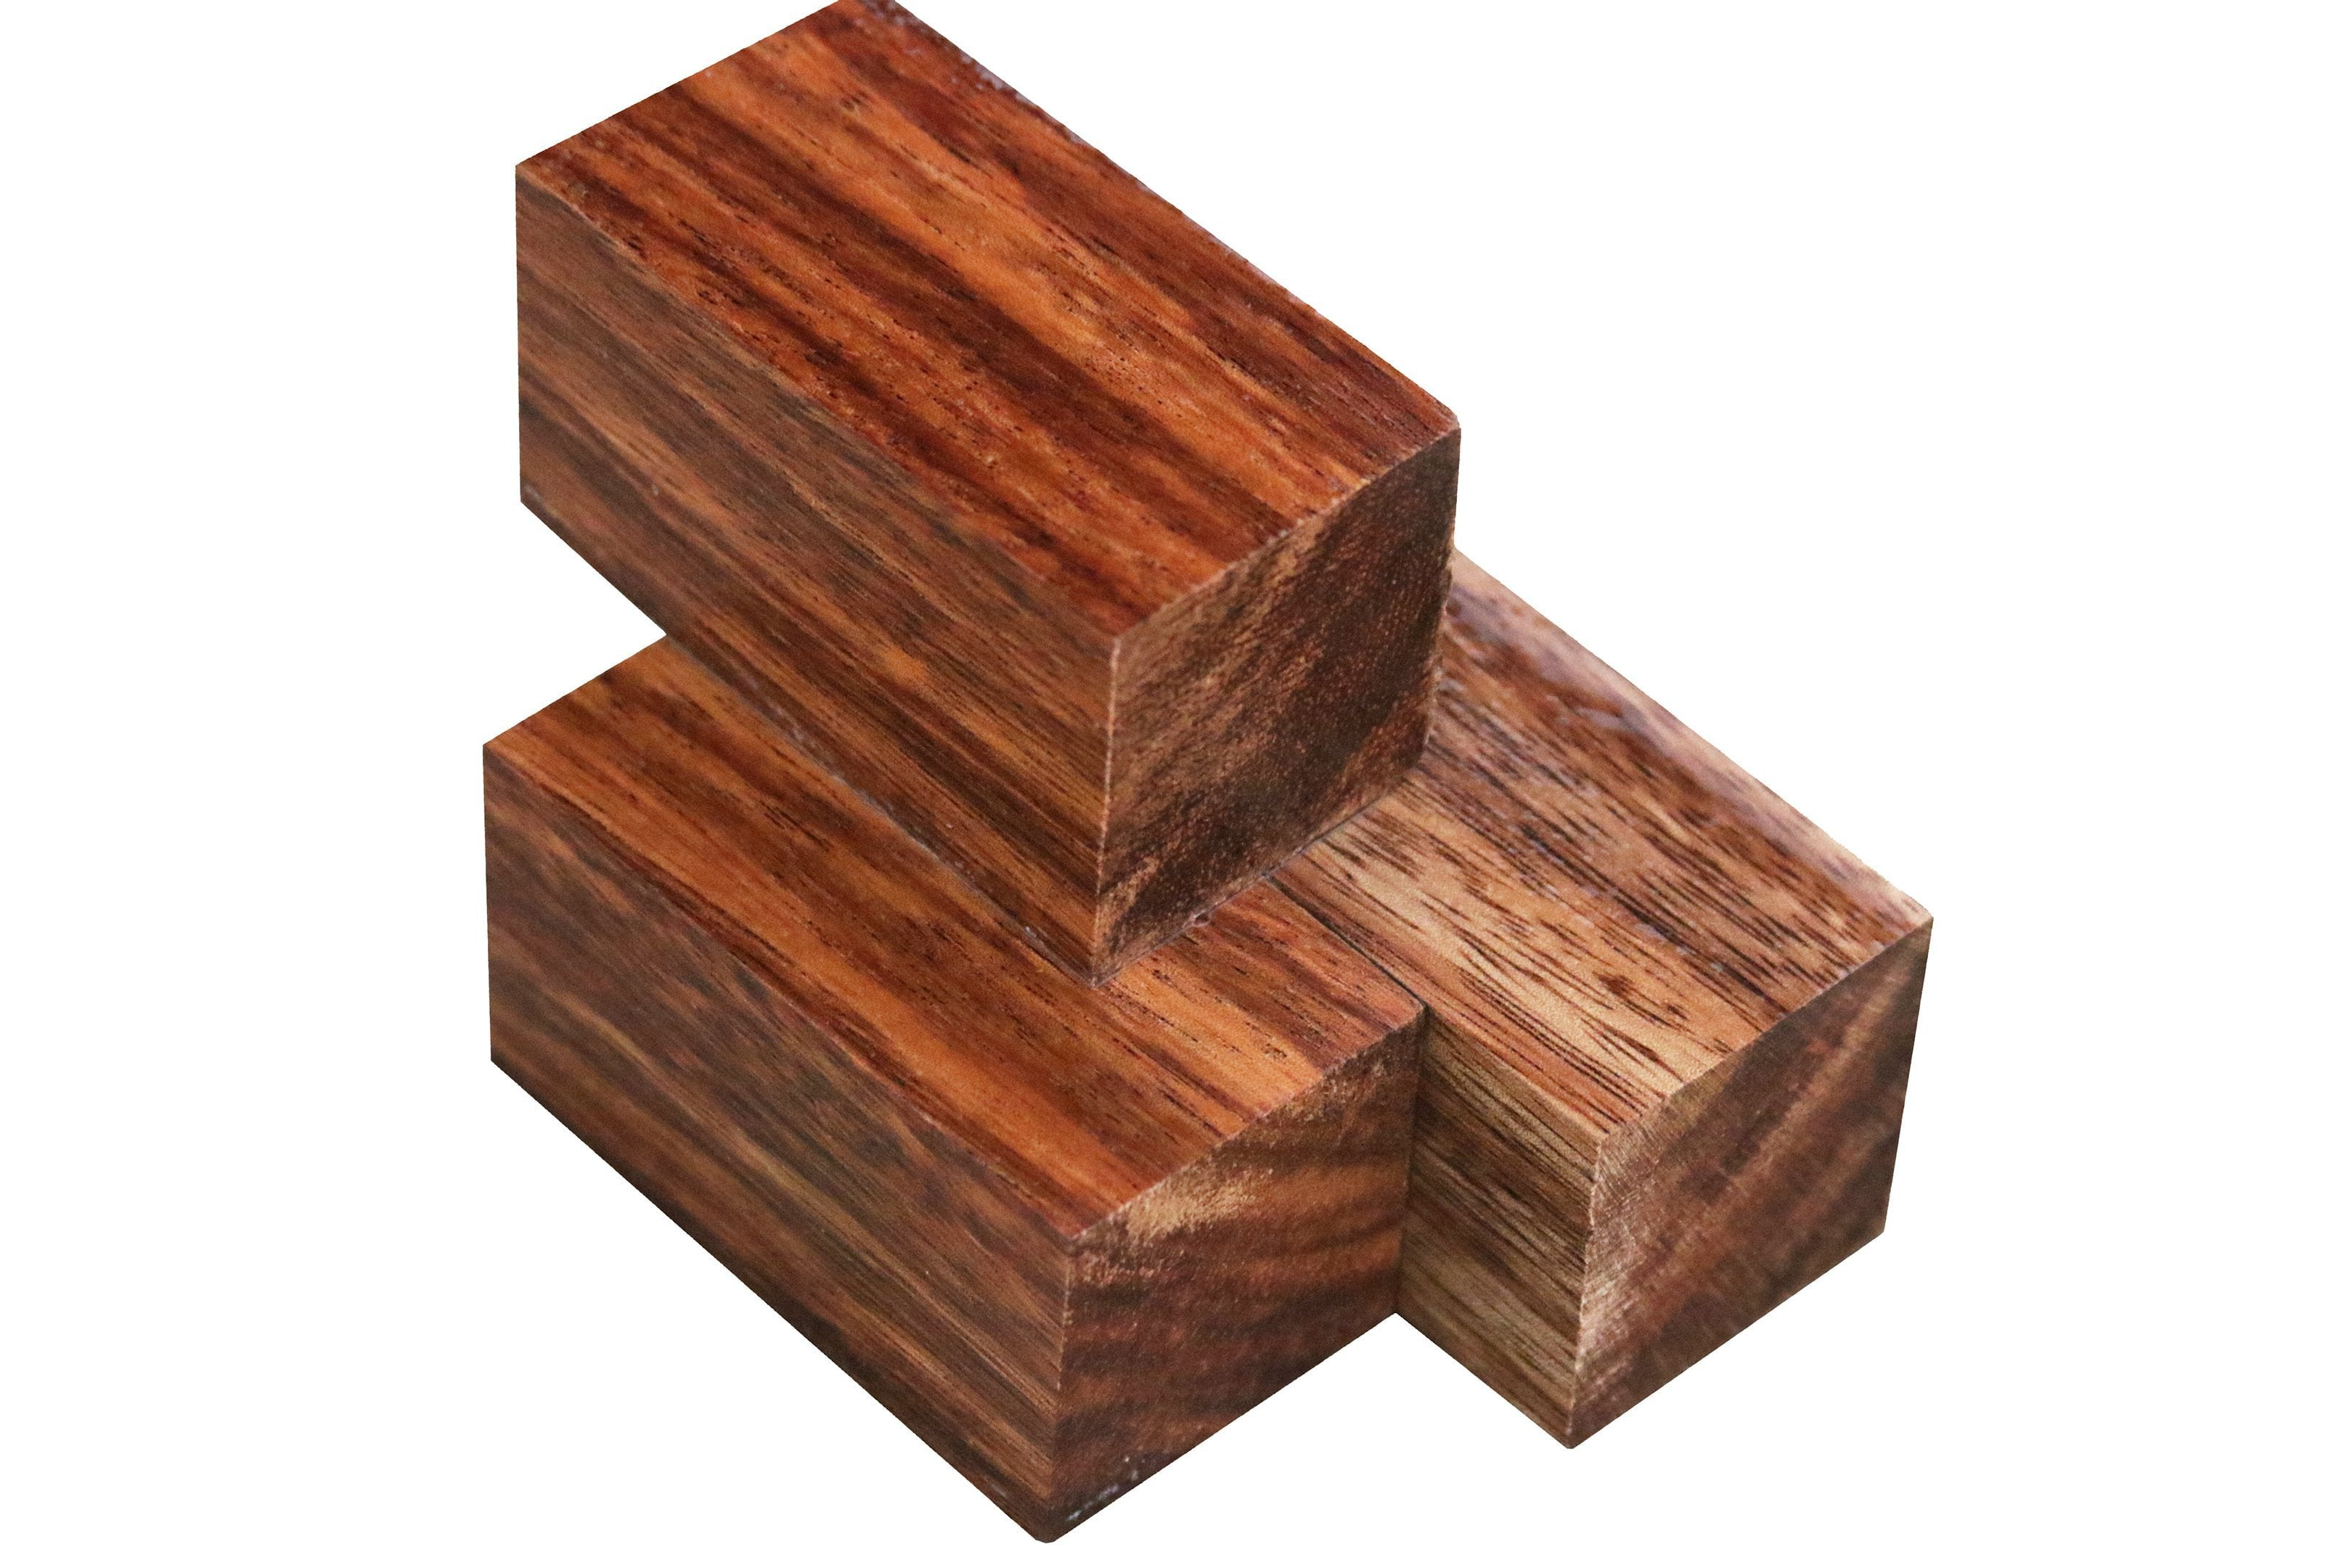 Pre-Cut Sizes – Cook Woods